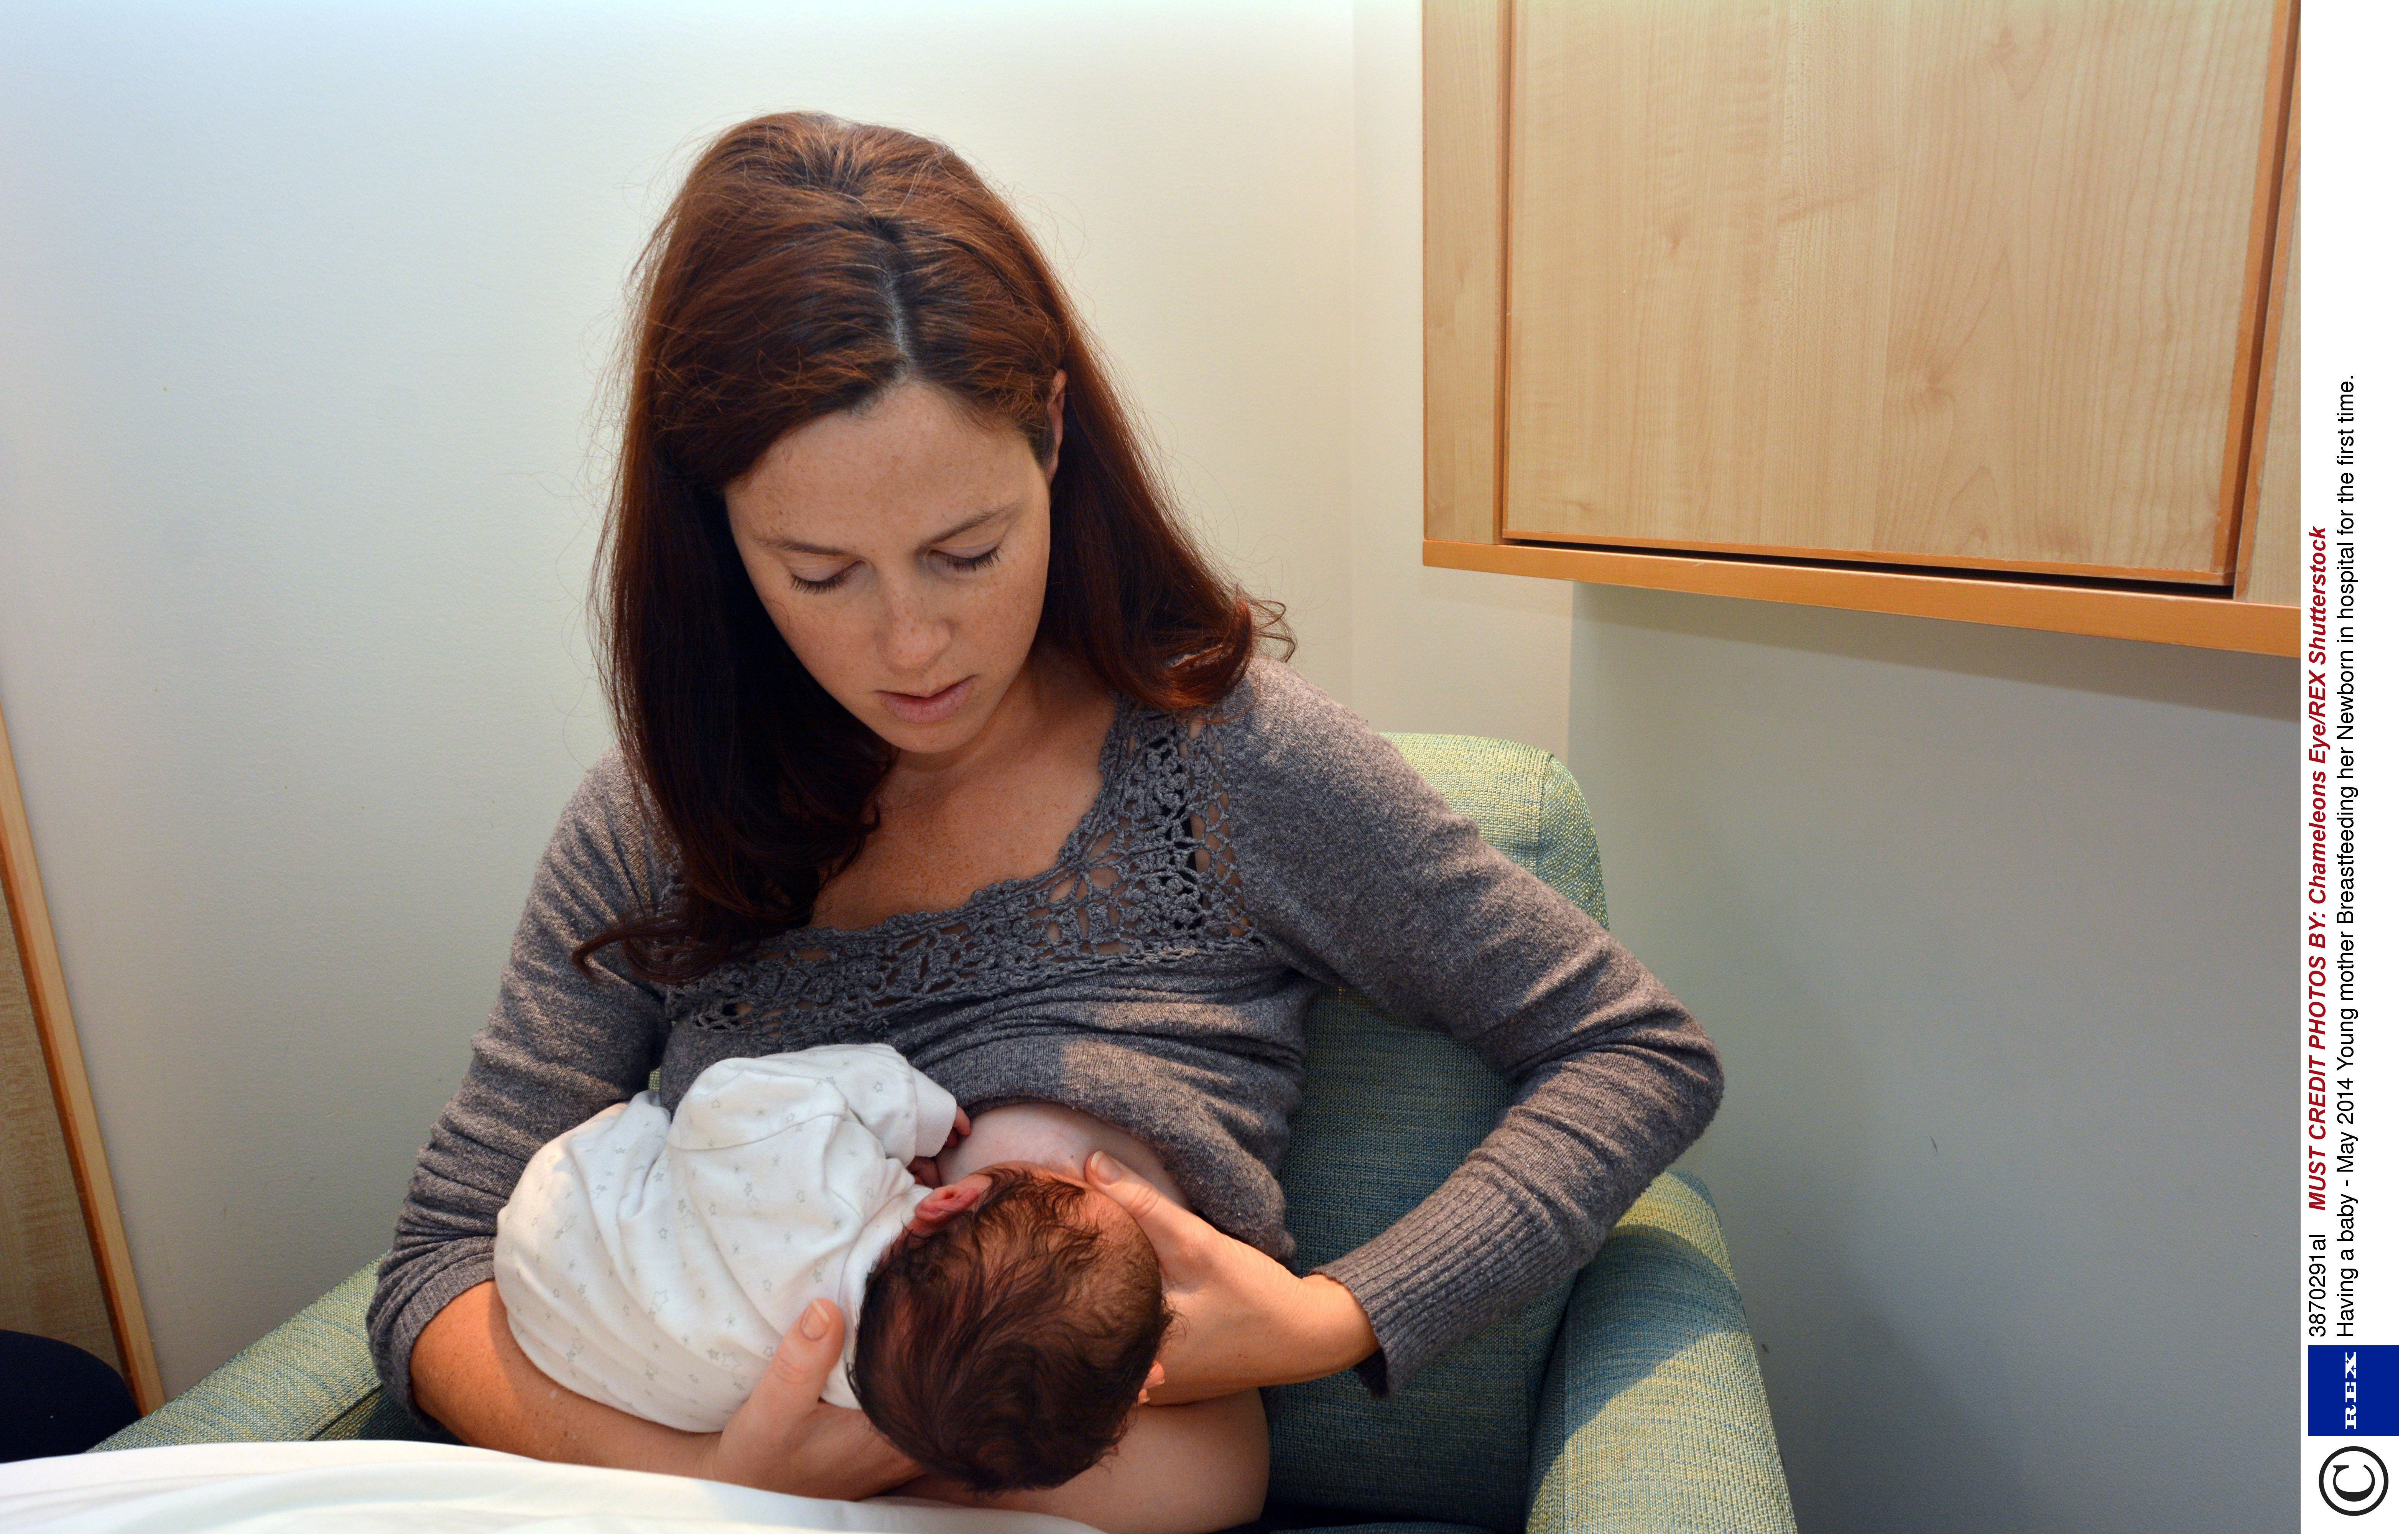 Animal Breastfeeding Porn you can now post breastfeeding and post-mastectomy photos on